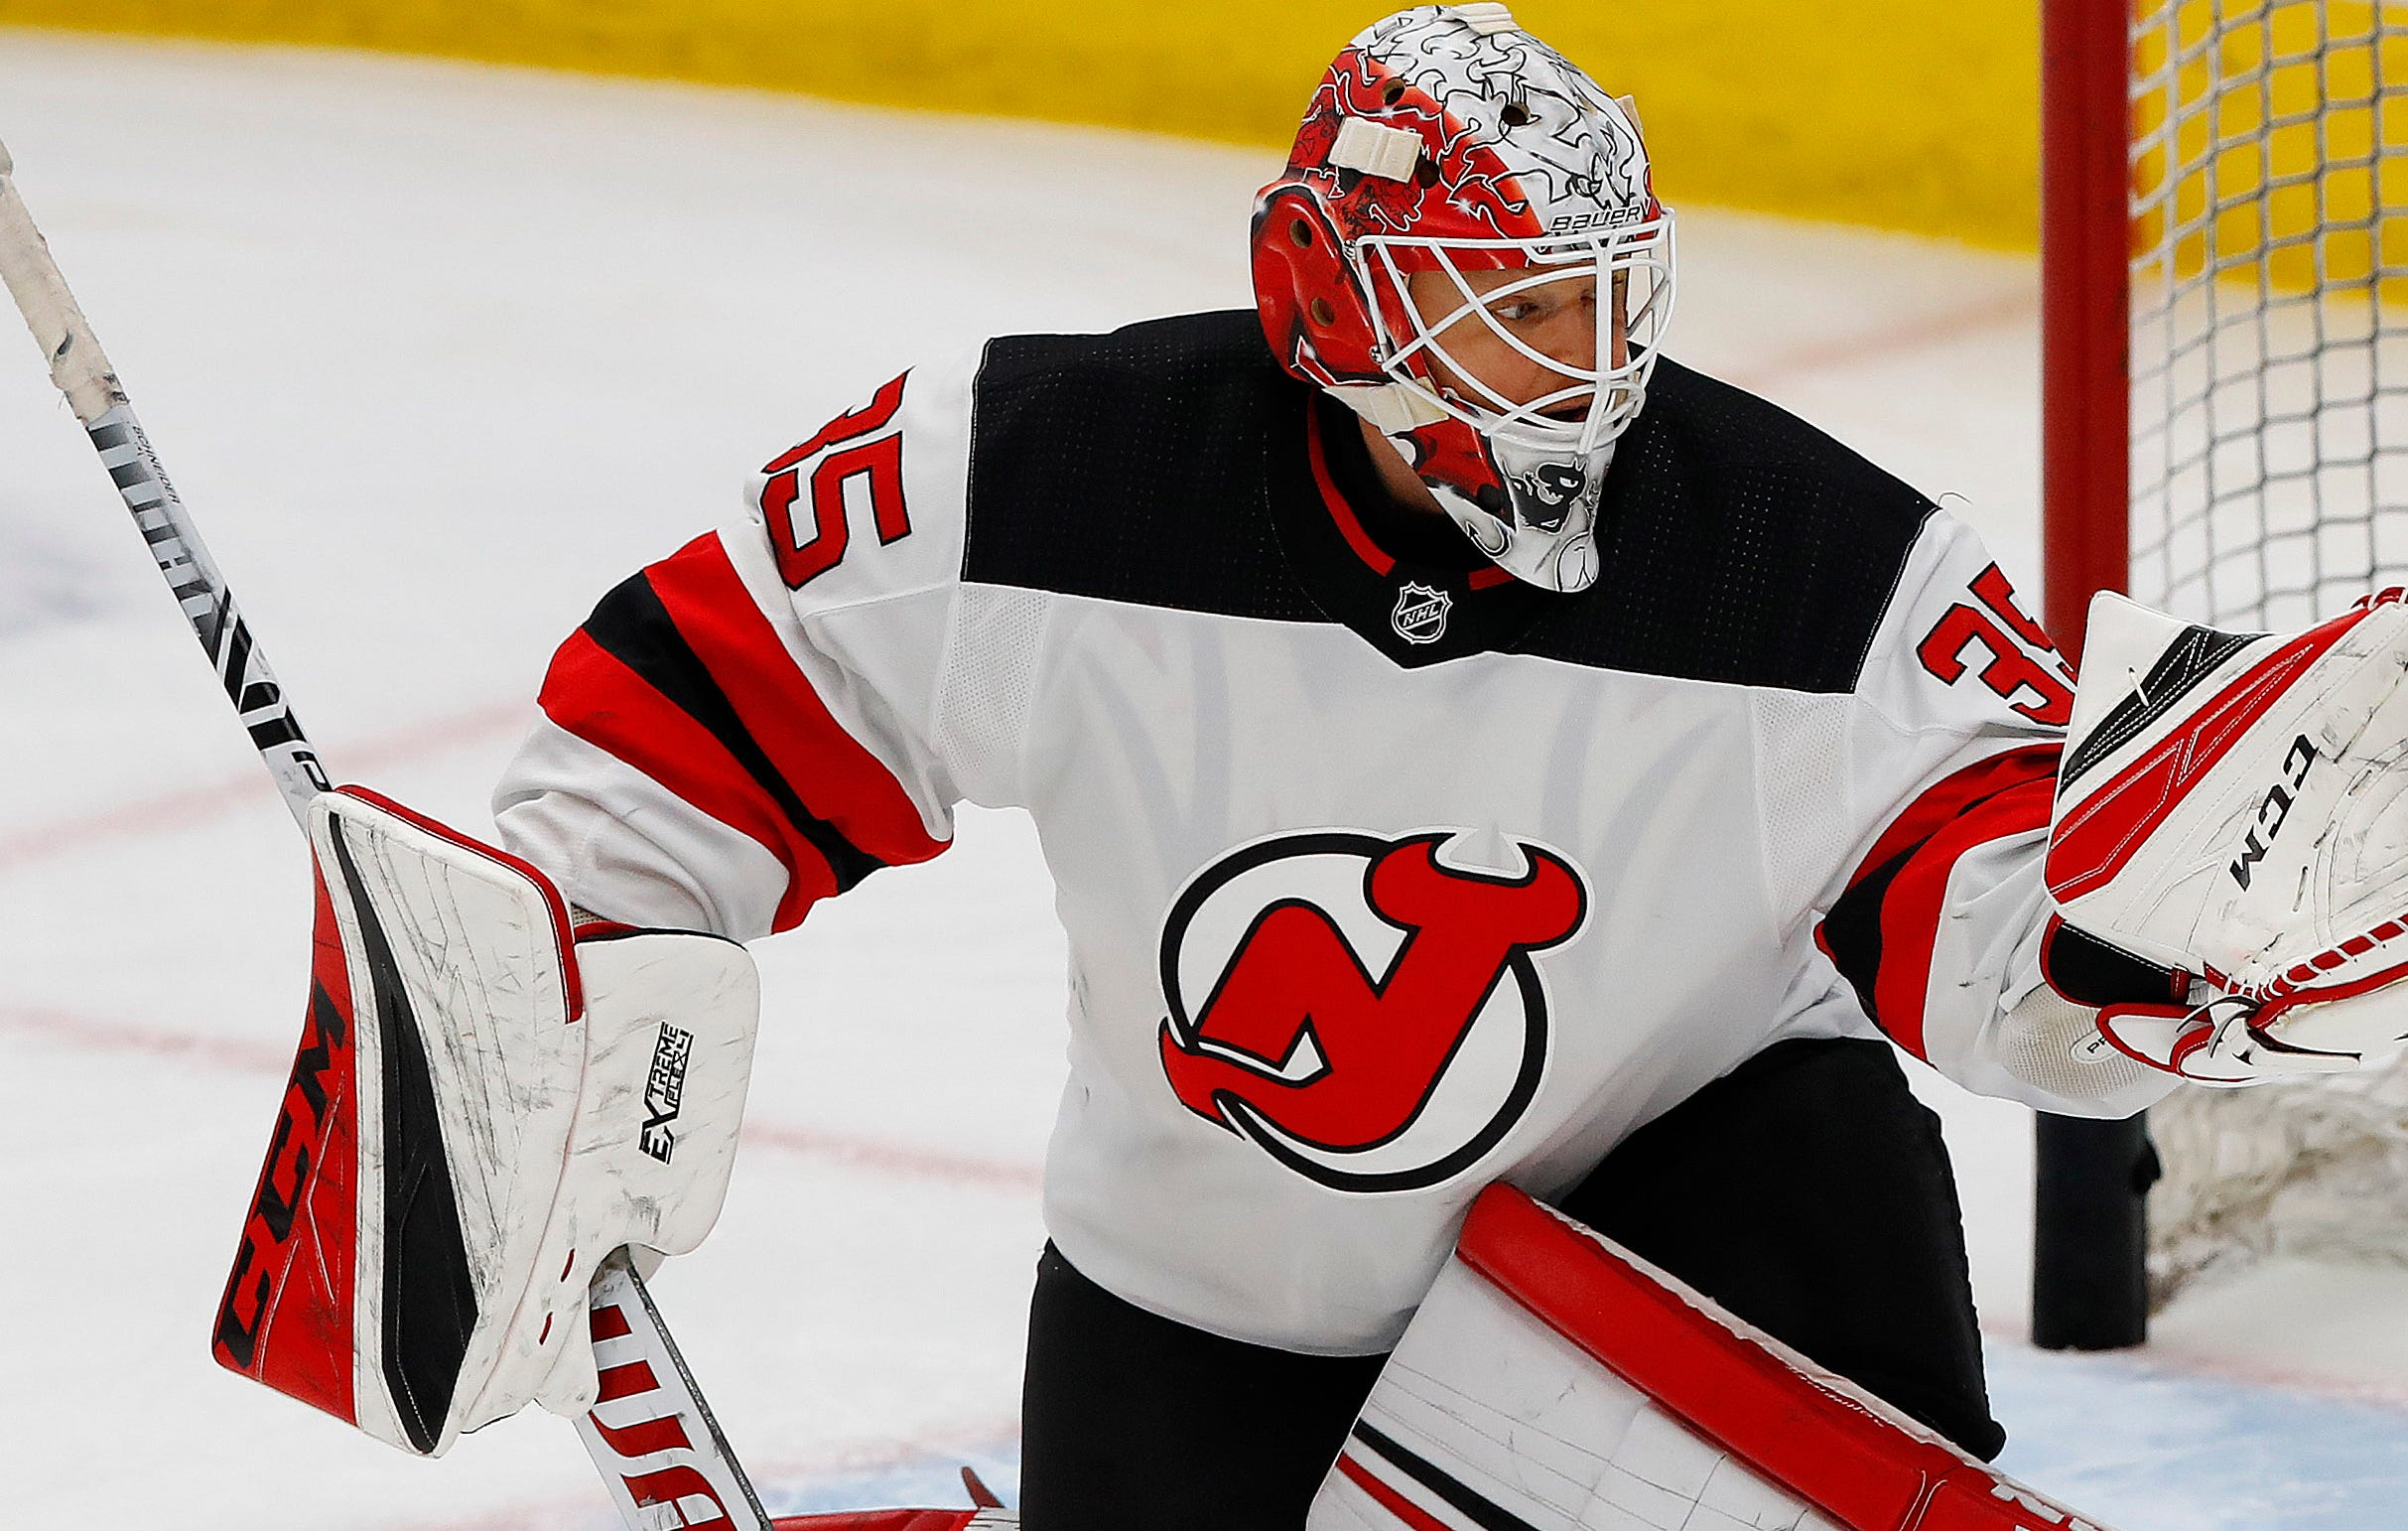 Cory Schneider: New Jersey Devils goalie placed on waivers